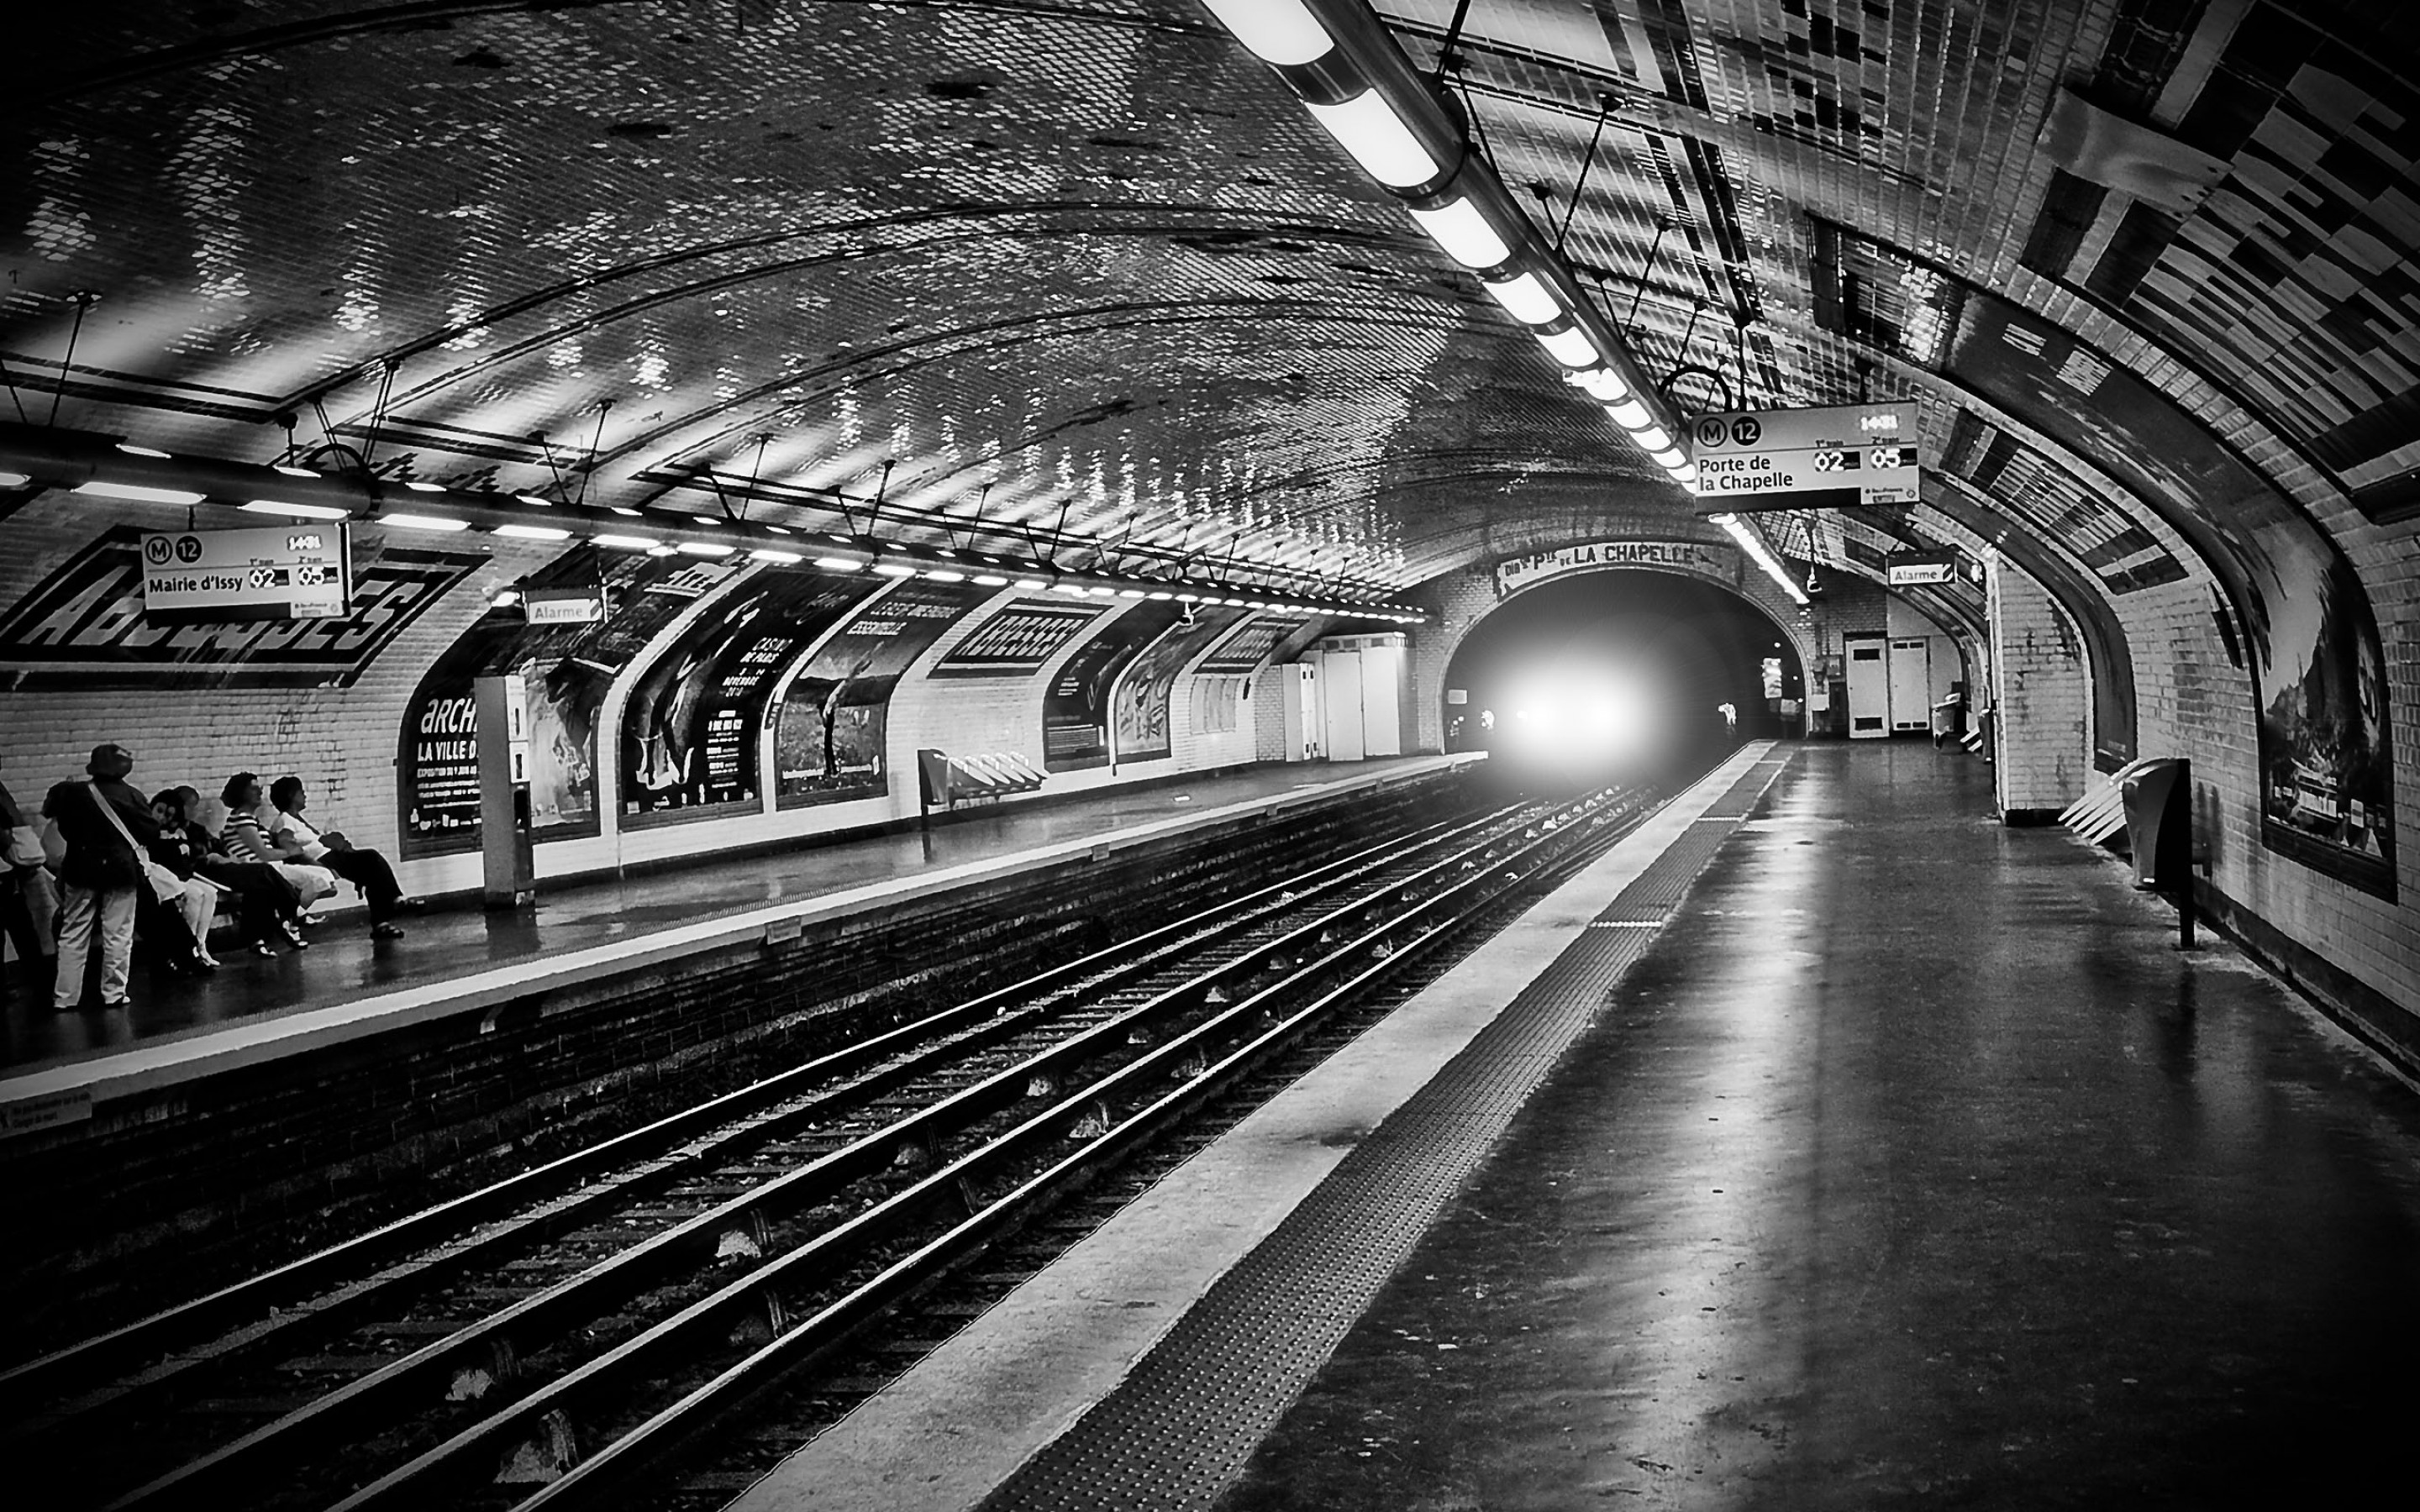 Paris Metro 2880x1800 Picture Photo